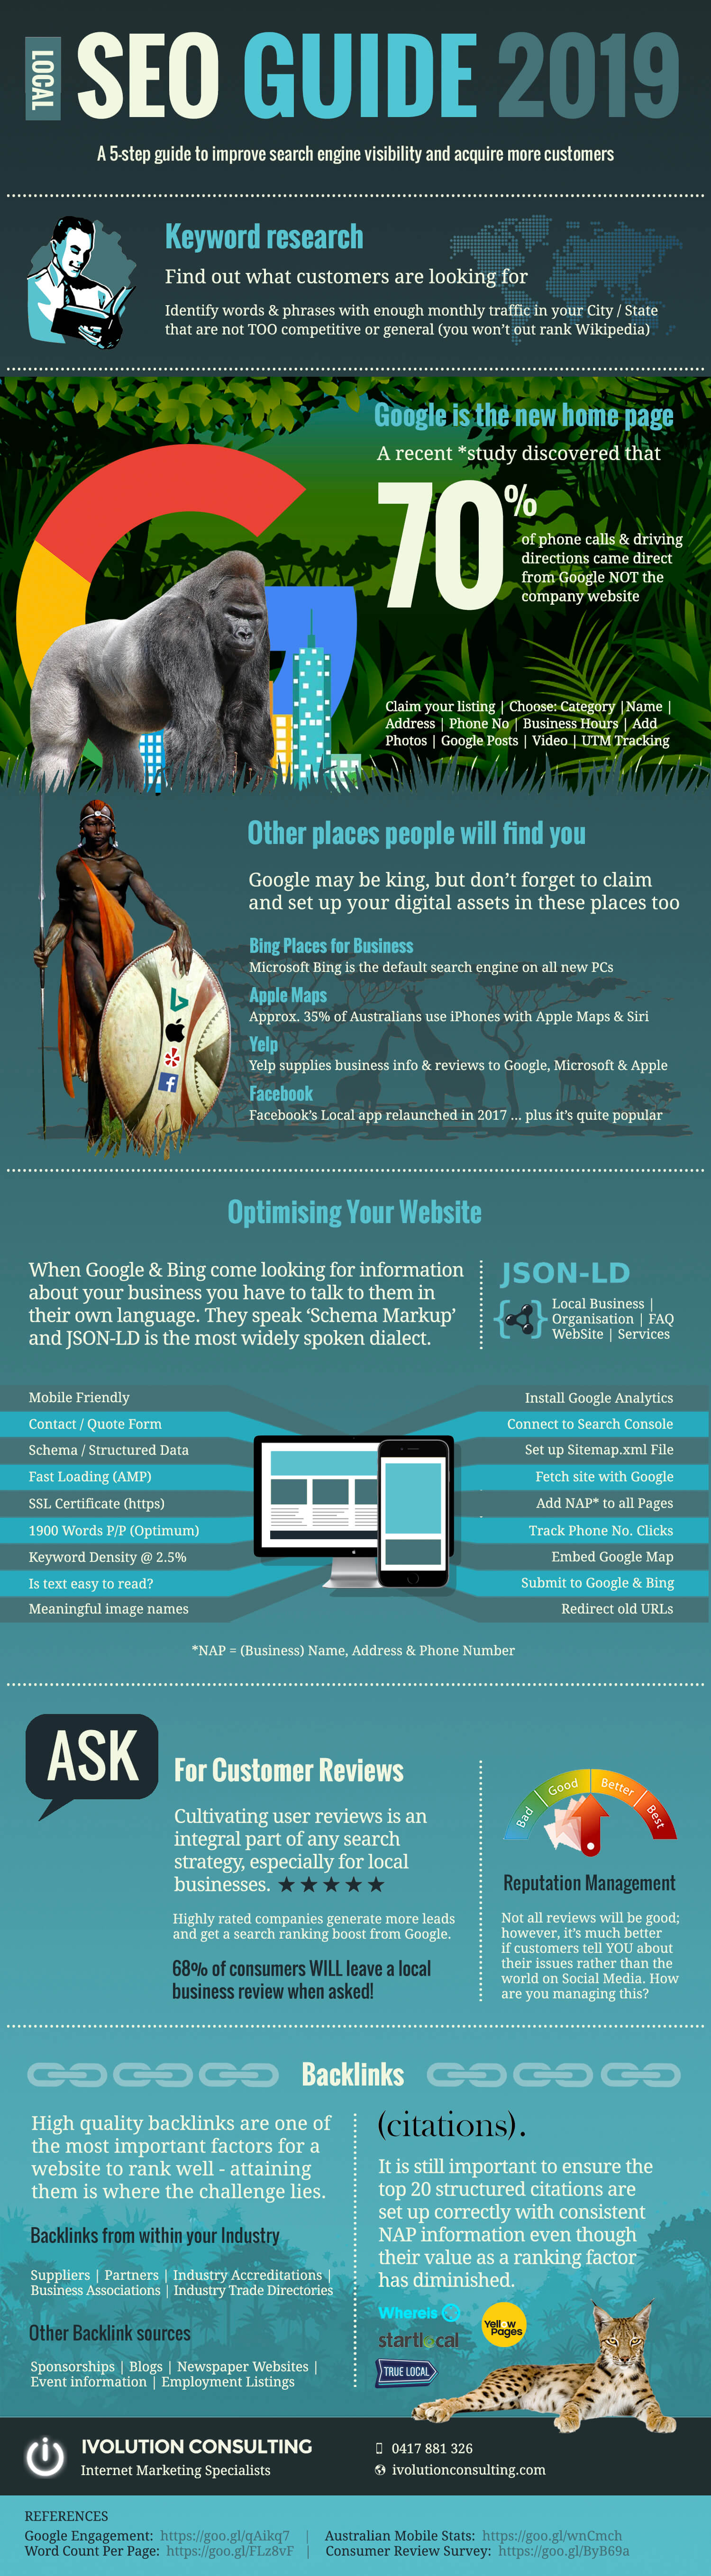 seo-infographic-ivolution-consulting-1.j